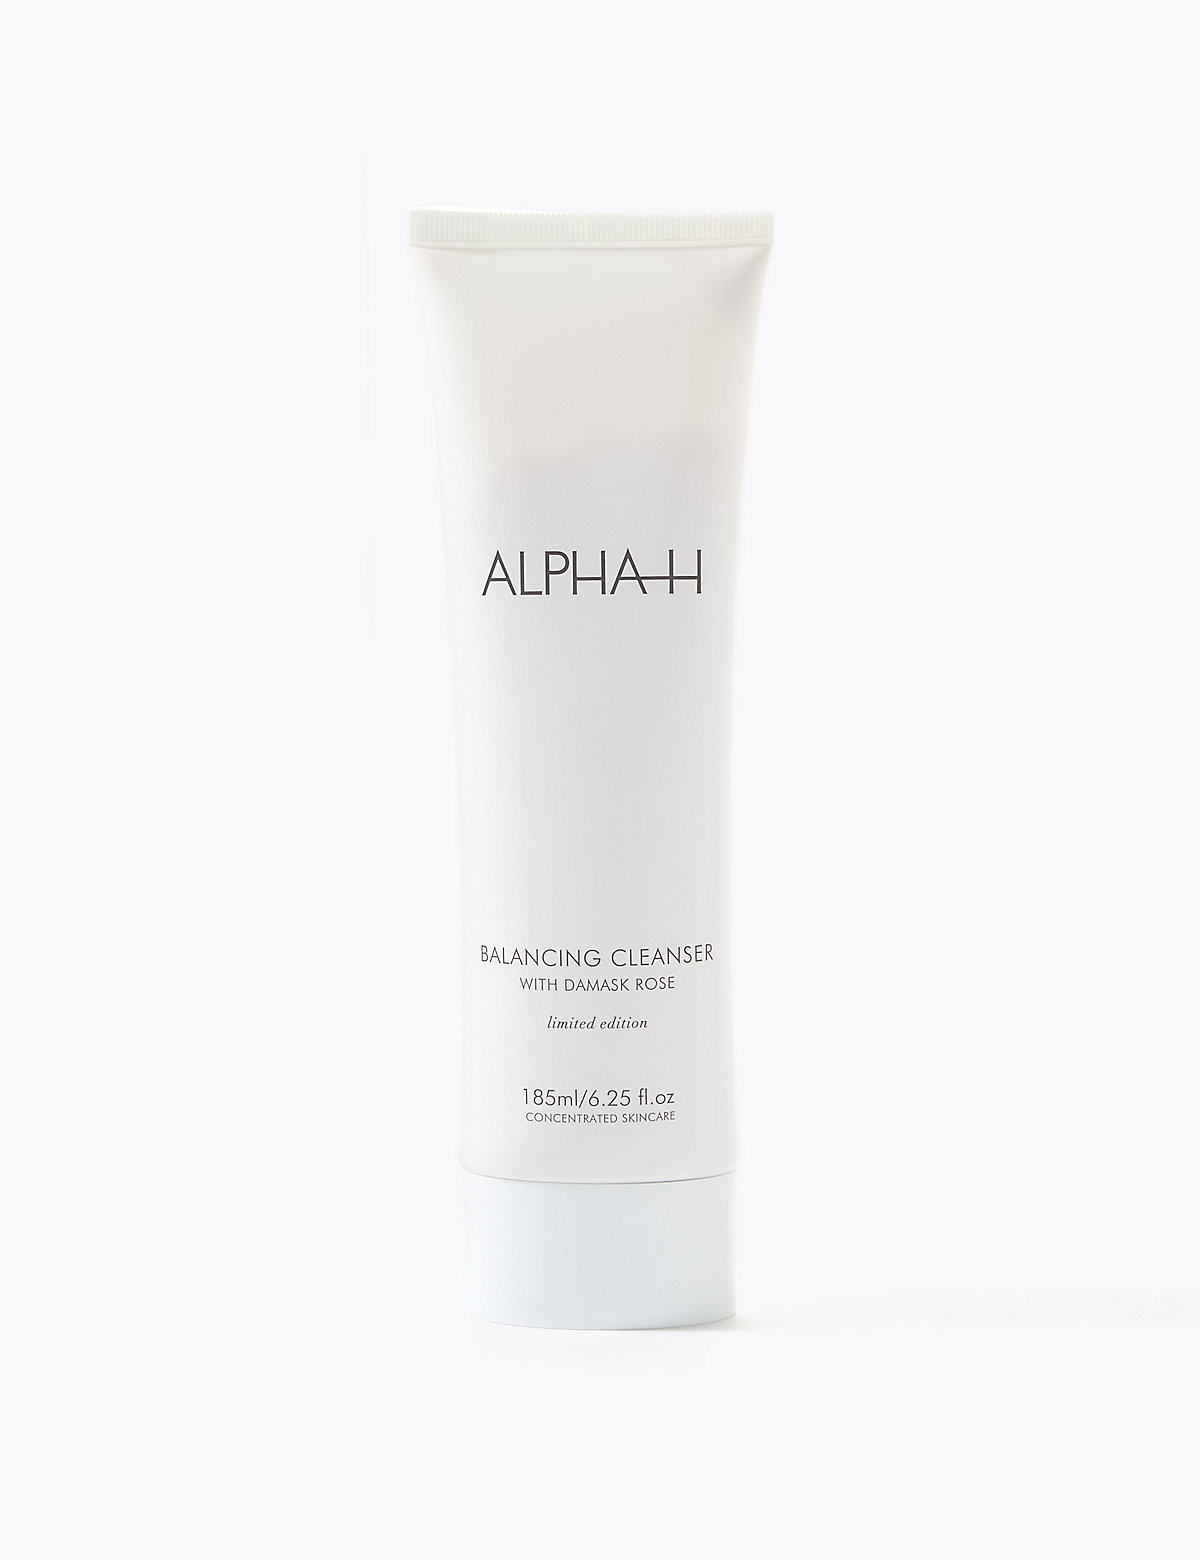 Alpha-H Limited Edition Balancing Cleanser with Damask Rose 185ml